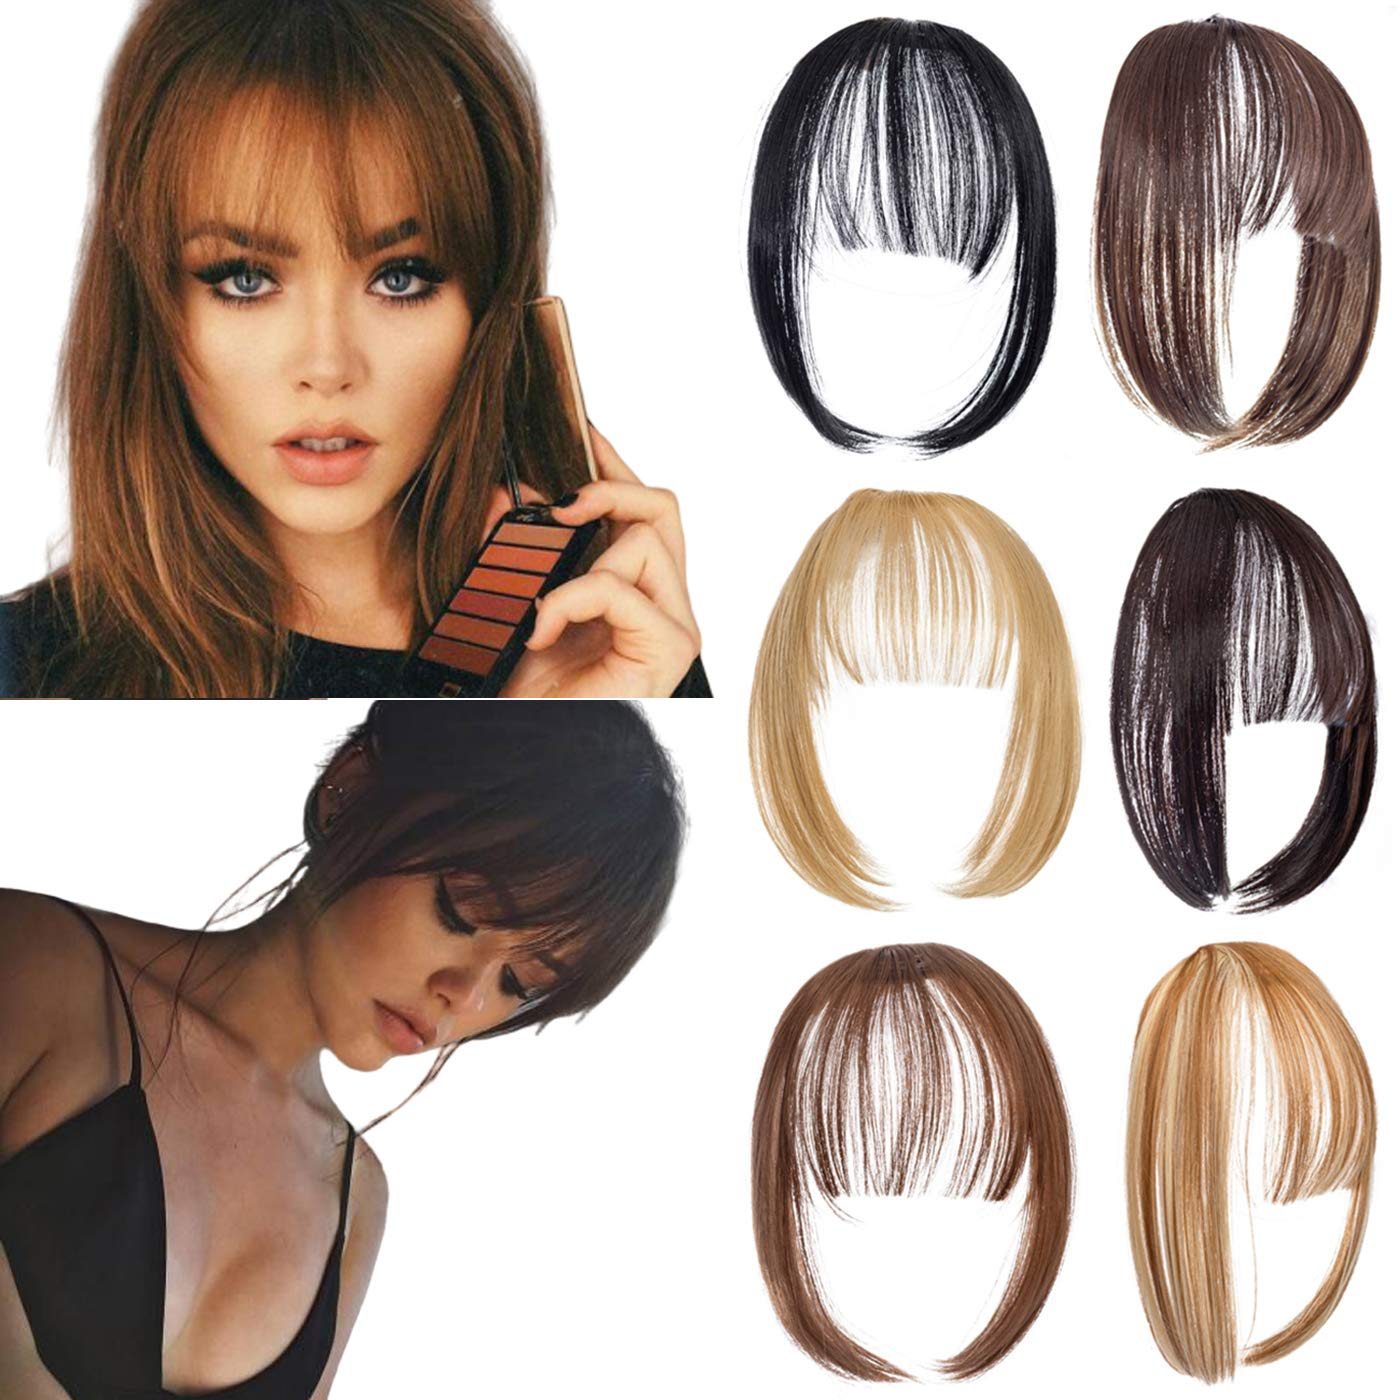 XBwig Clip in Bangs Fringe Hairpieces Hair Extensions One Piece Straight Cute Layered Front Neat Air Bang with Temples (Light Red Brown)